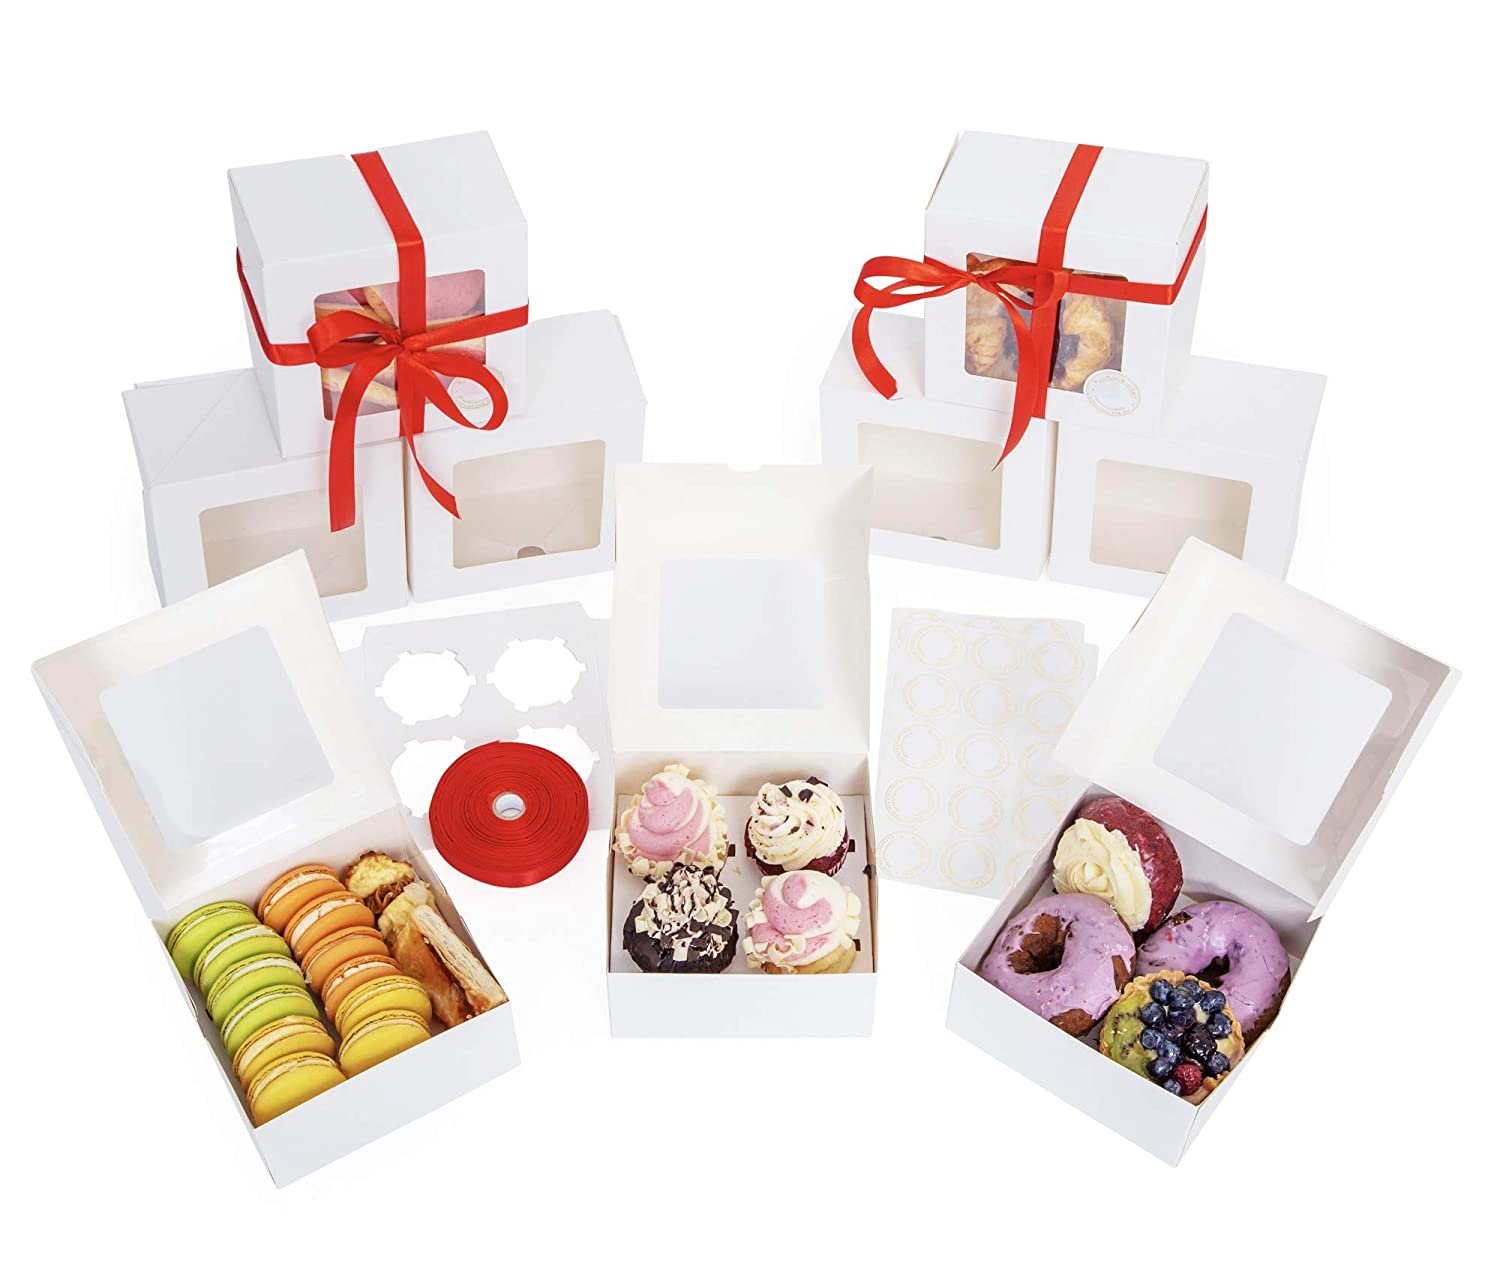 Coast to Koast Cake Boxes 6 Inch, Greaseproof. 30 pcs Bakery Box With Window, Cupcake Inserts, Ribbons, Stickers! Auto-Pop up Treat Boxes, Cupcake Boxes, Pastry Boxes, Cookie Boxes, Strawberry Boxes, Oil Resistant 6x6x3 Bakery Box for Dessert and Donuts